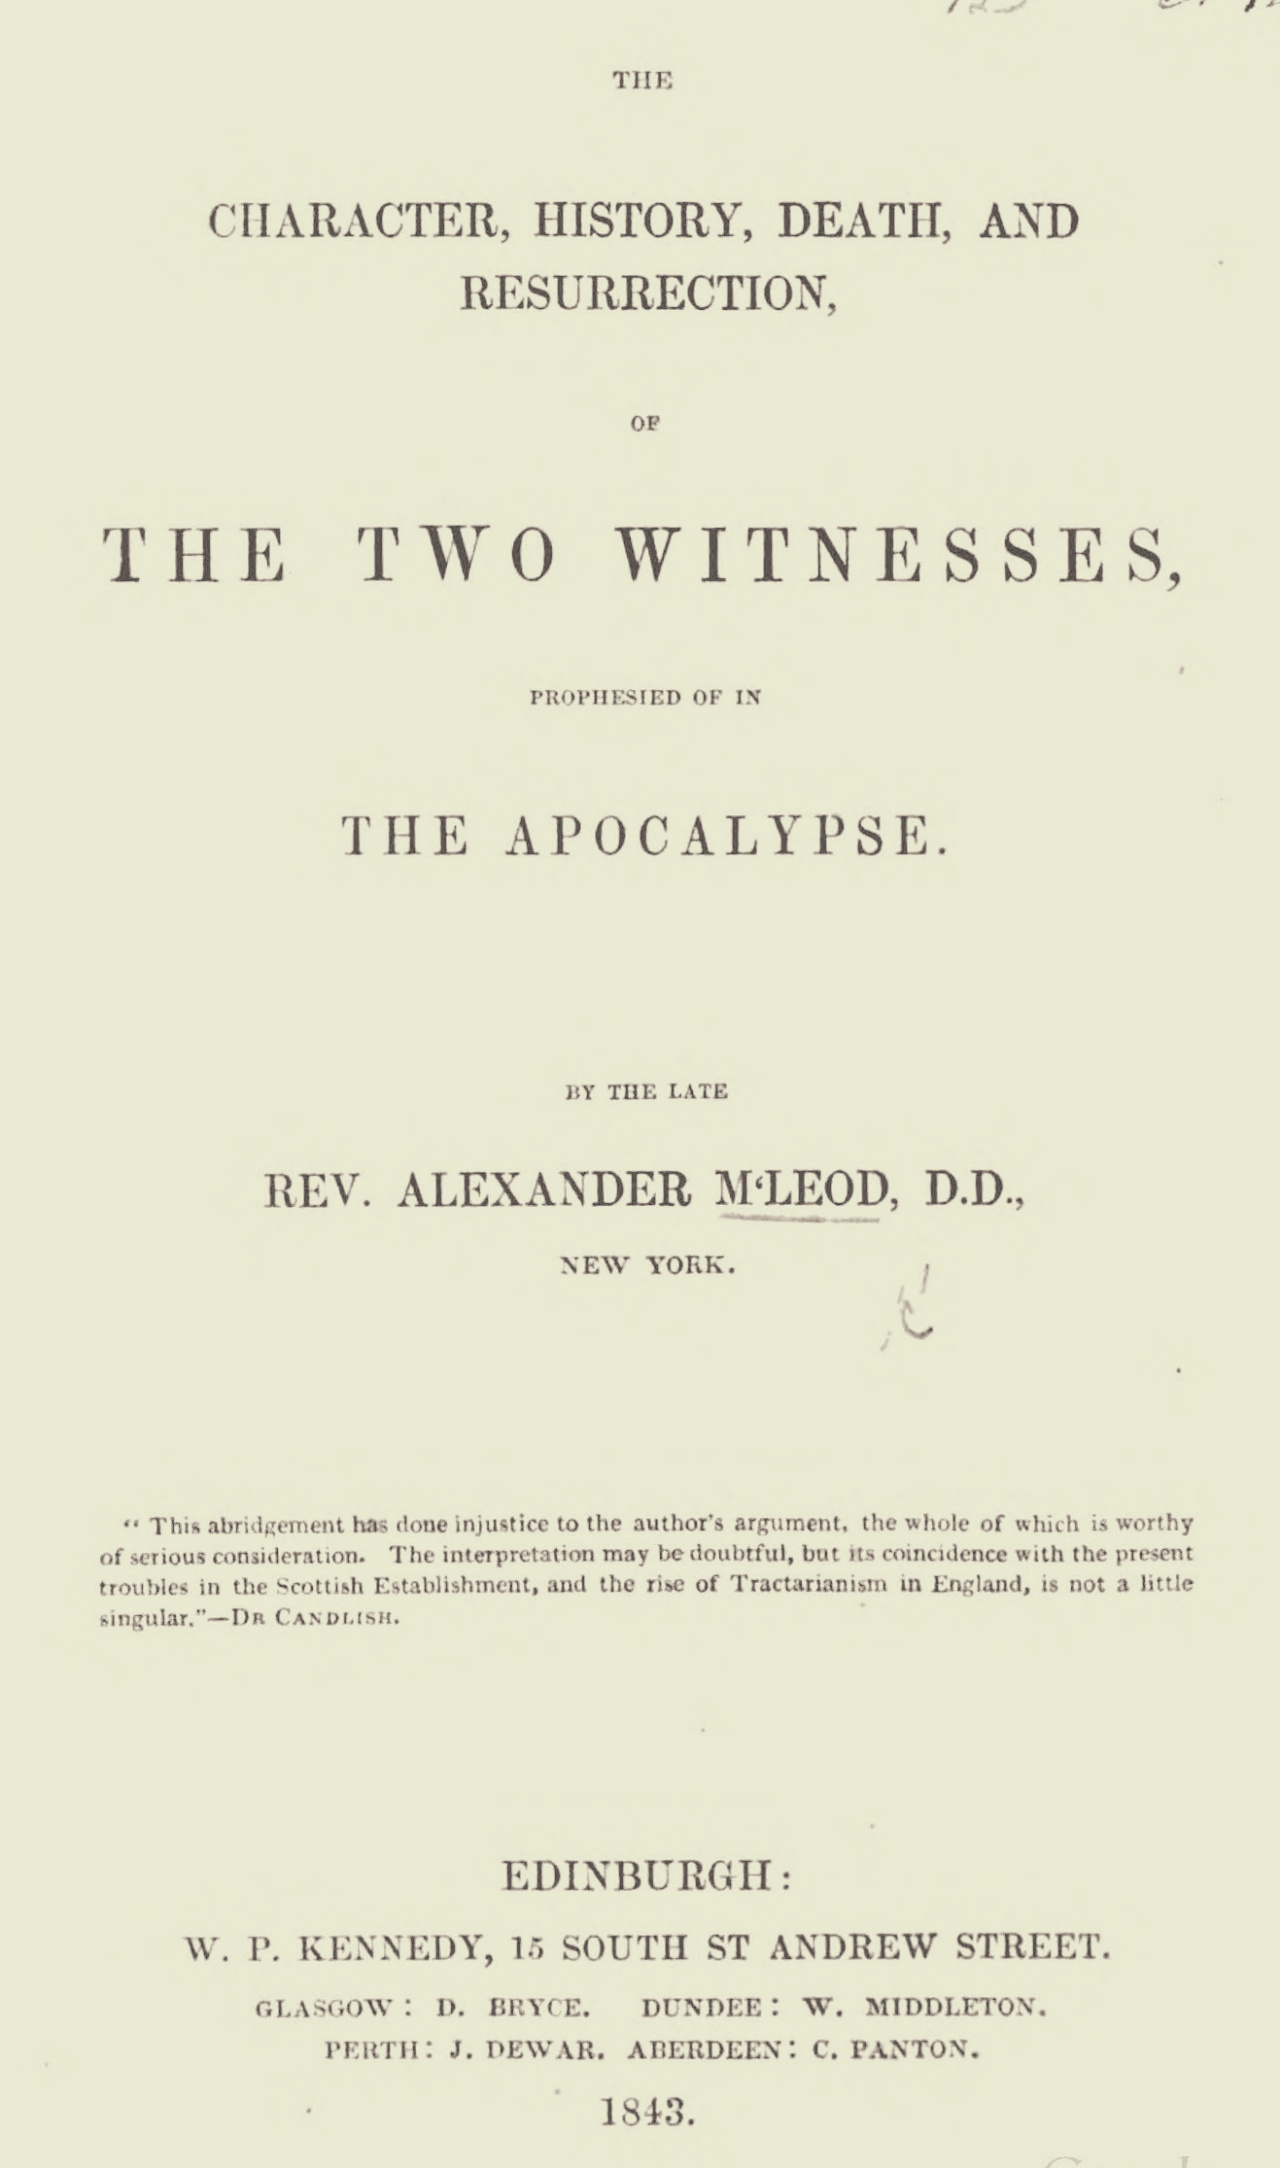 McLeod, Alexander, The Two Witnesses Title Page.jpg